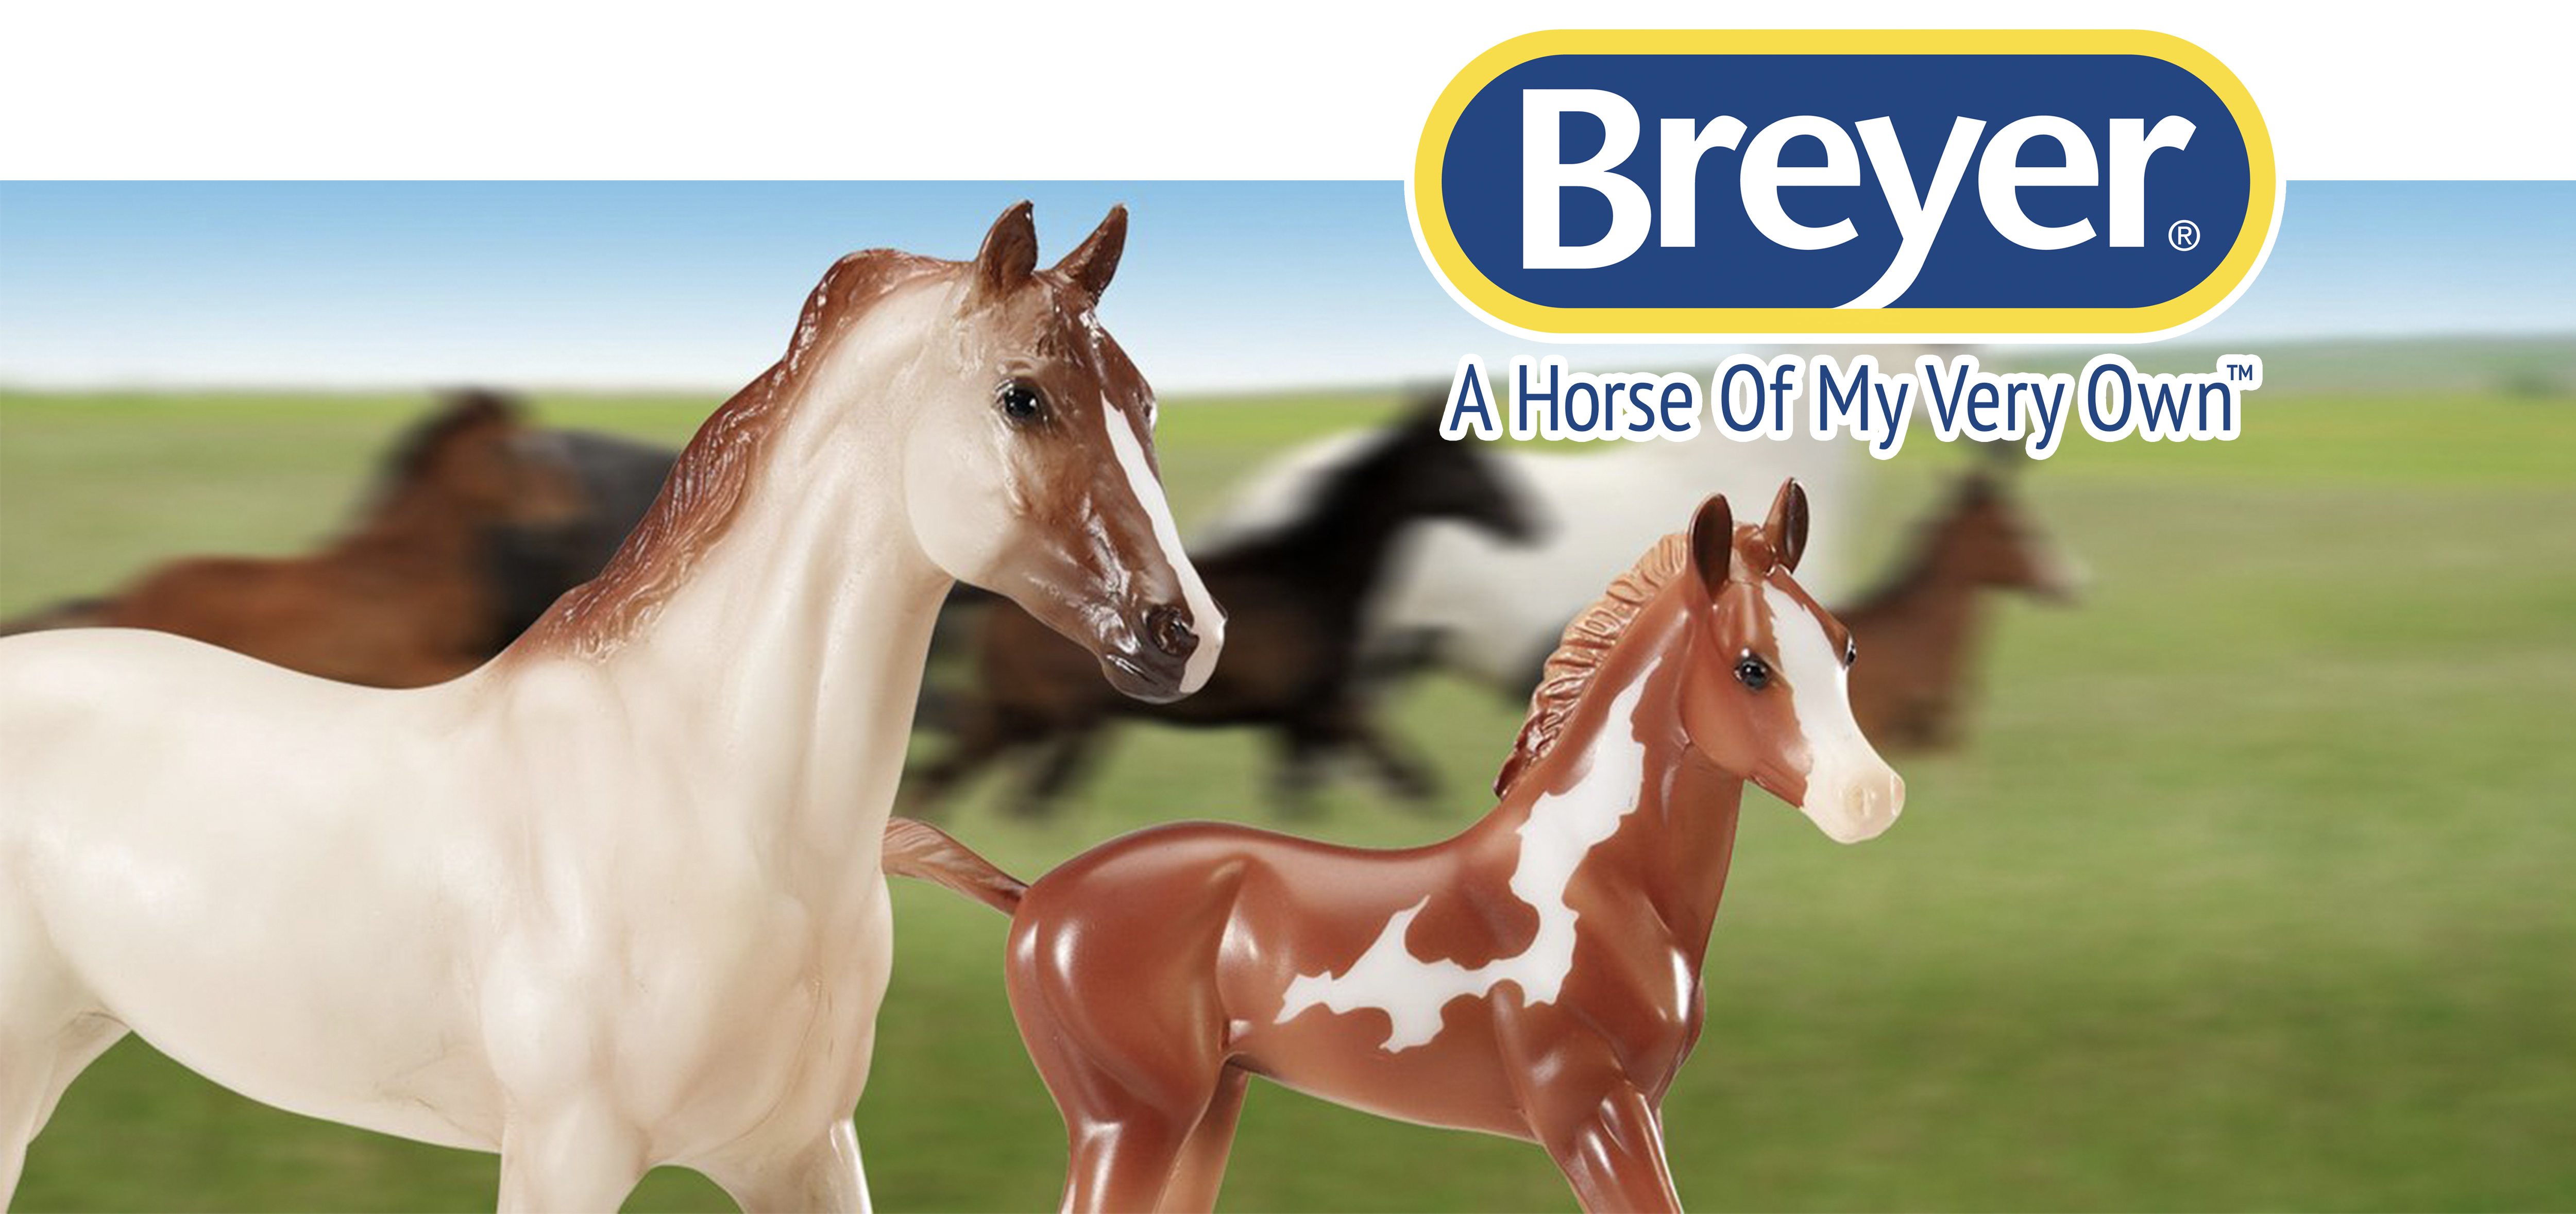 Buy Breyer horse models from Australia's best horse figurine store. Shop Breyer traditional, classic, stablemates, crafts and more.